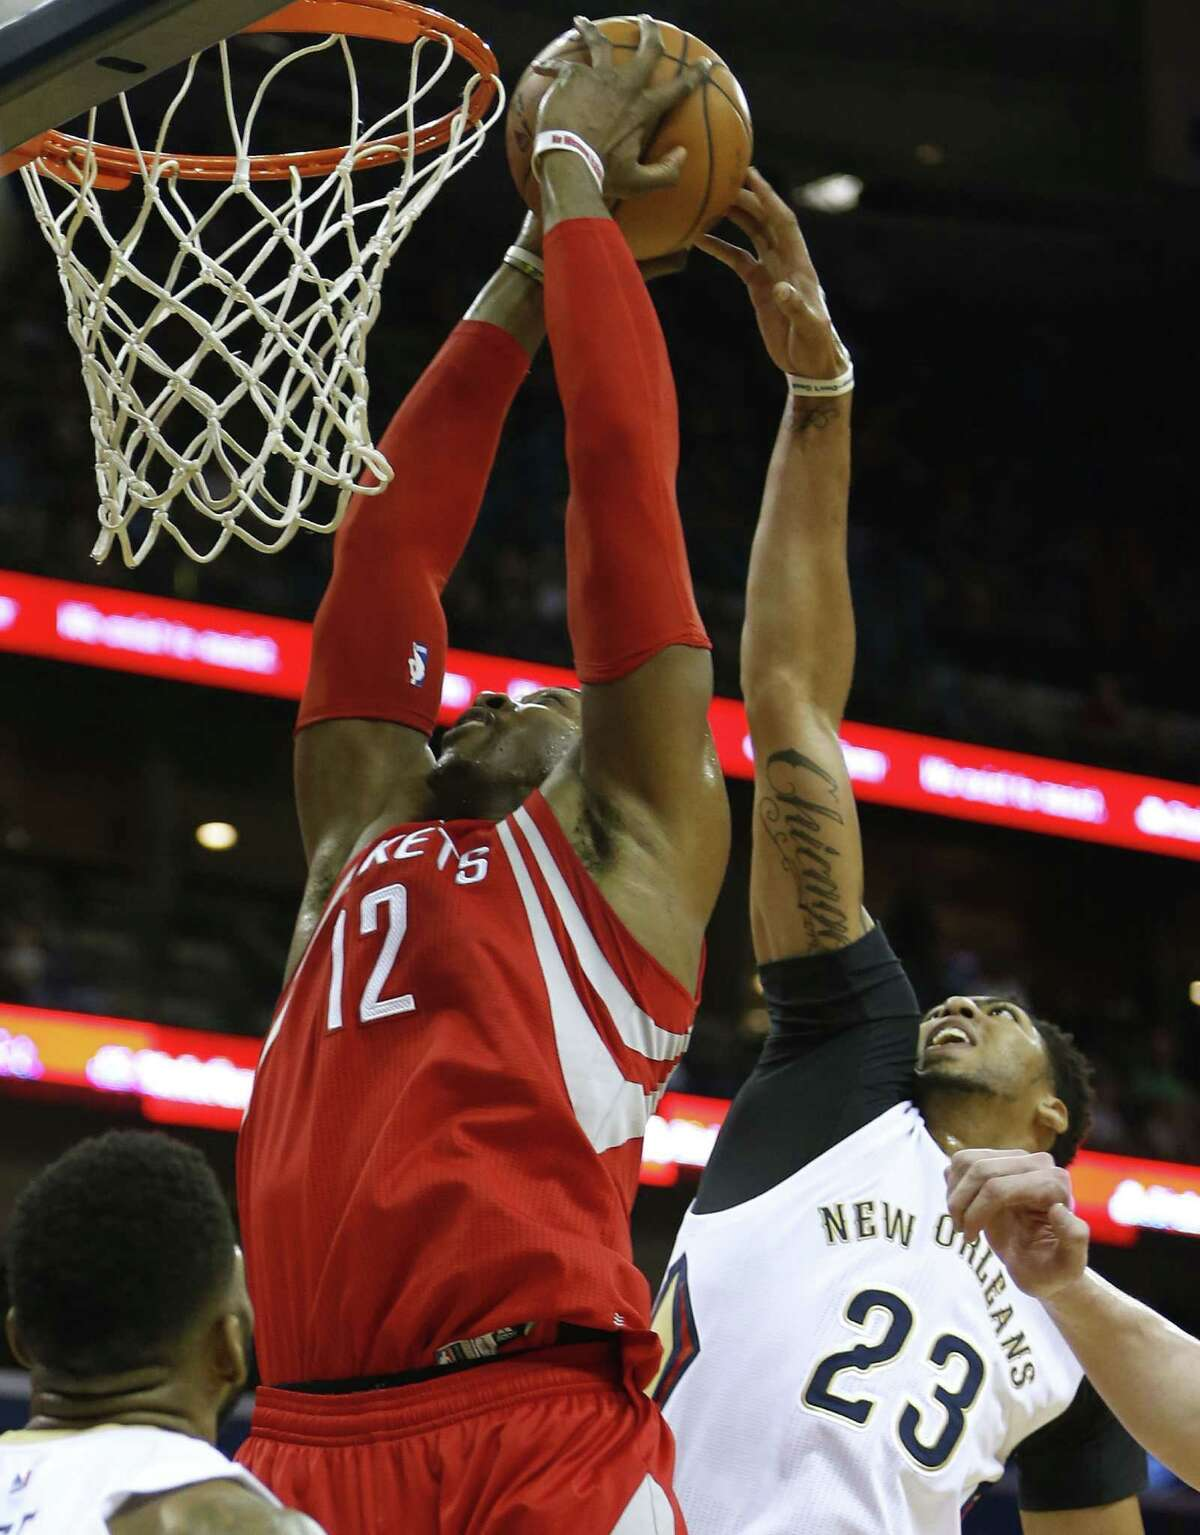 Rockets center Dwight Howard had seven points on 3-of-4 shooting against the Pelicans.